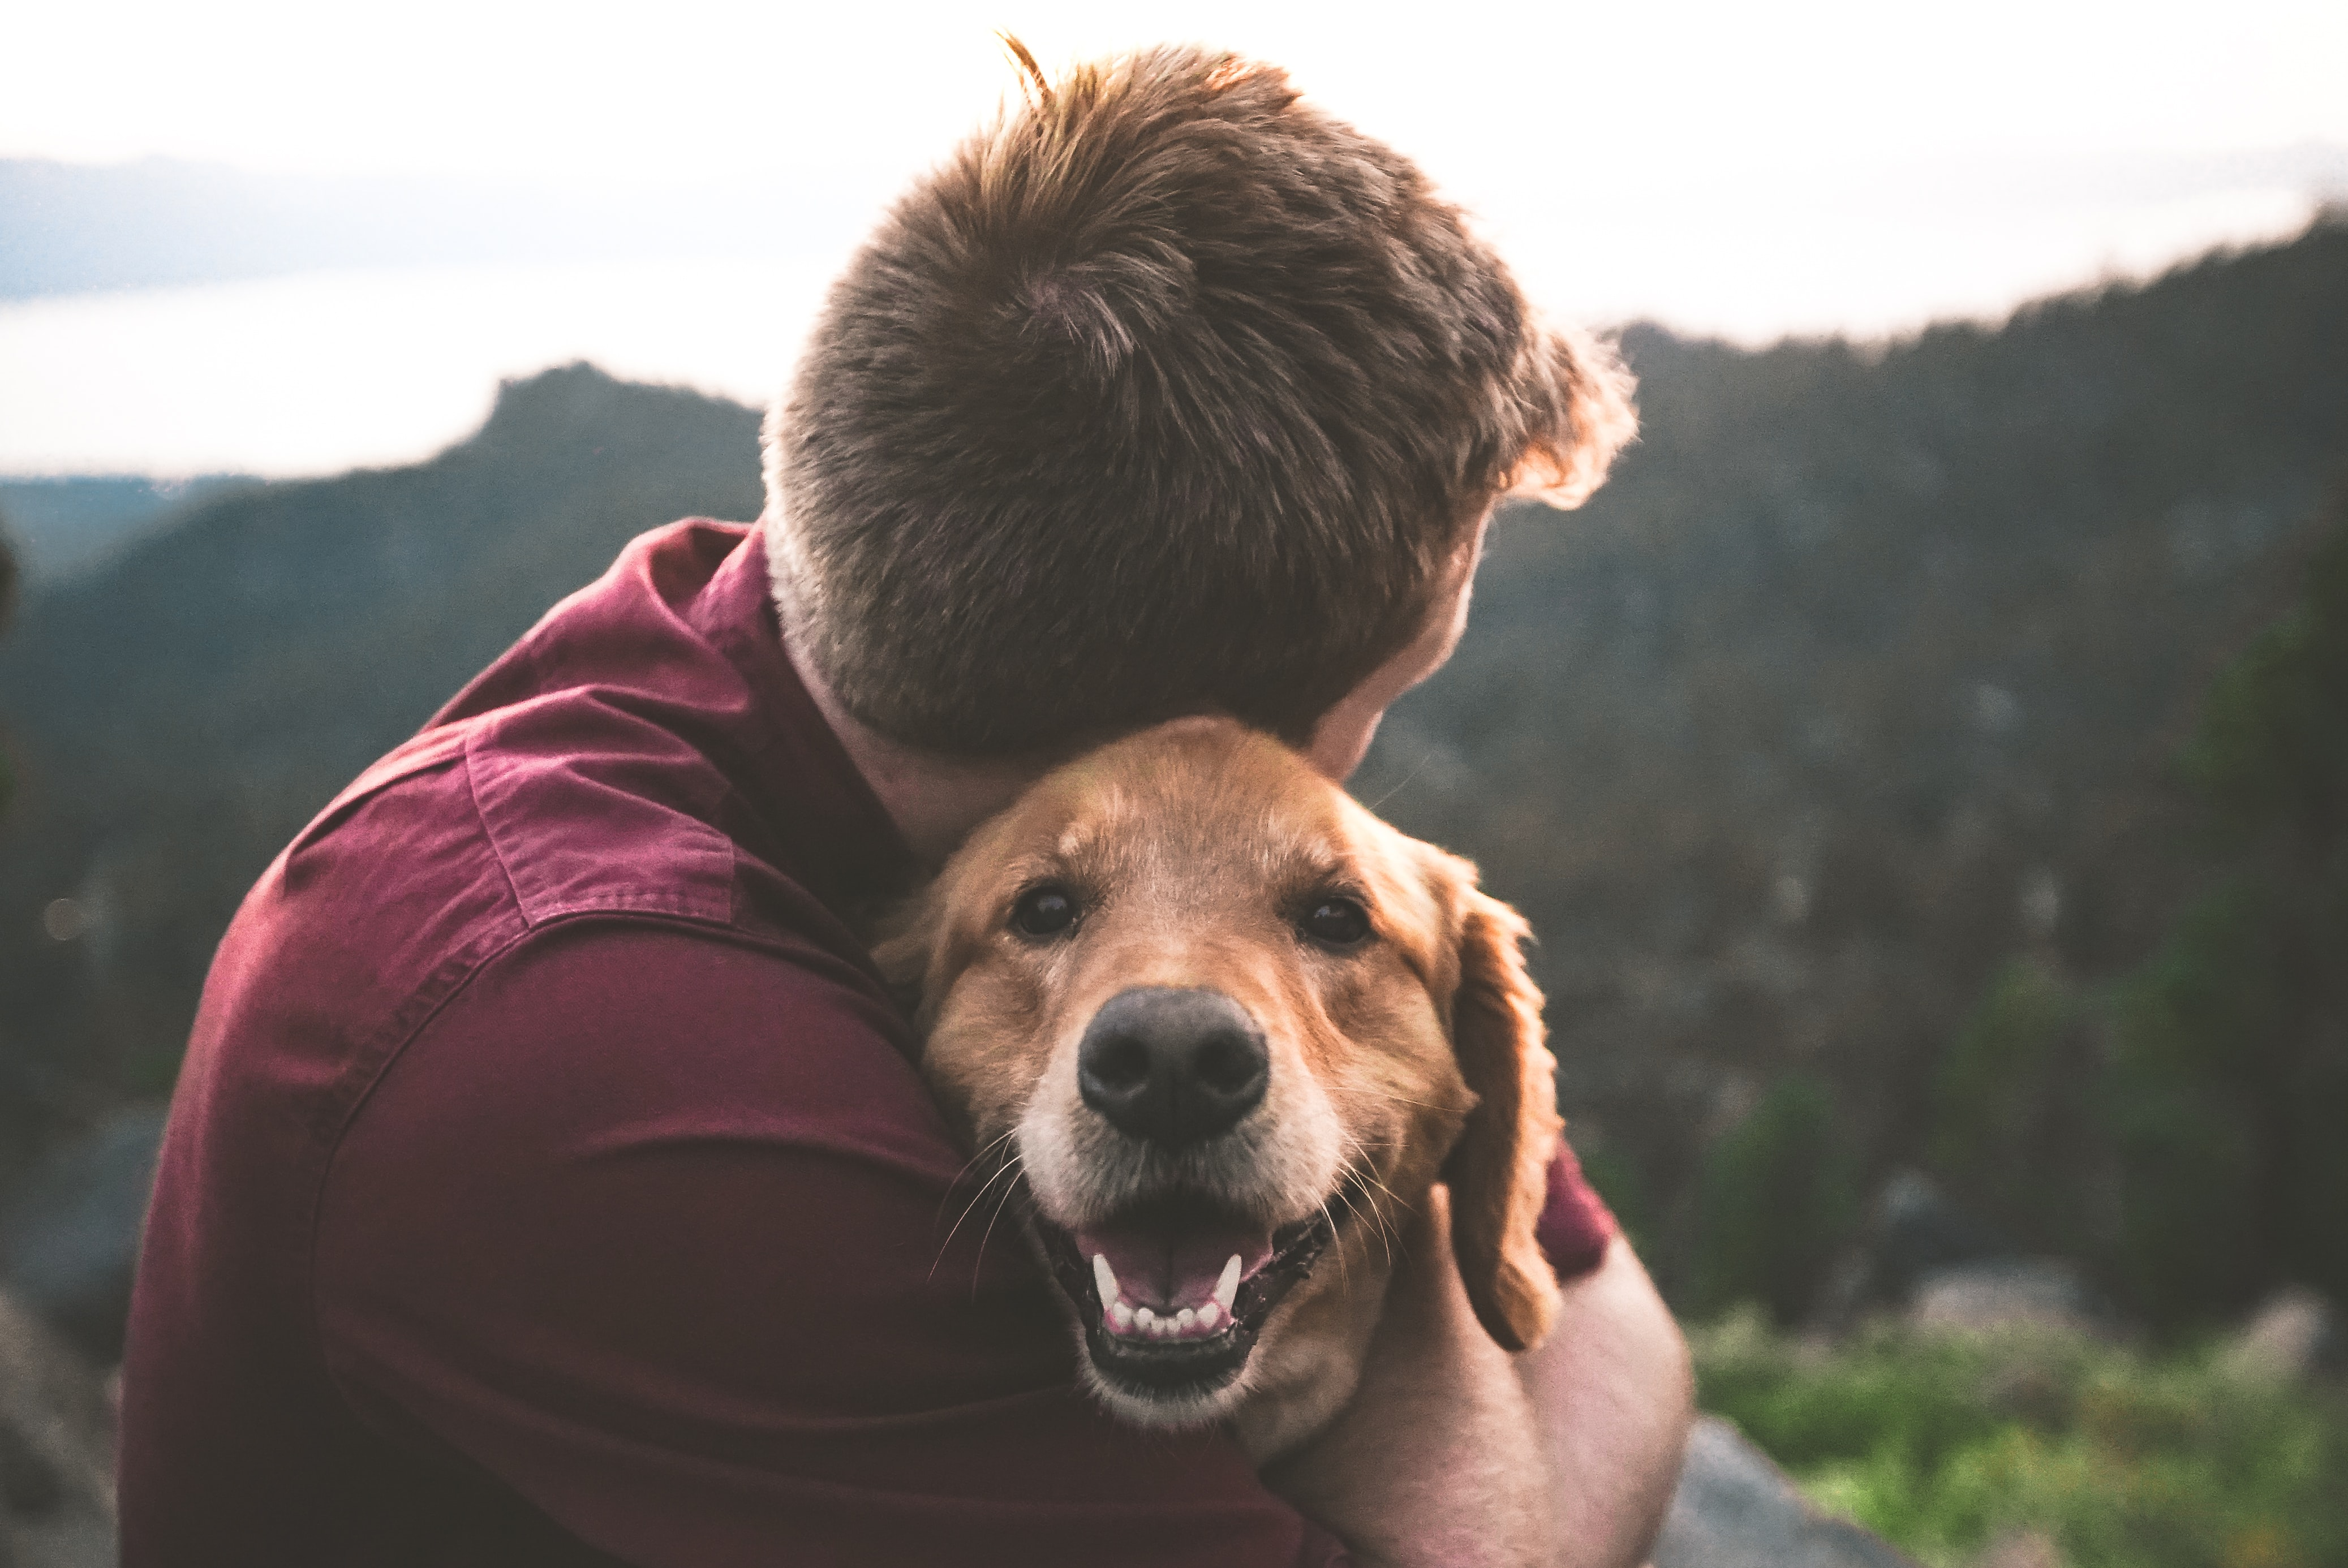 Pet health insurance pre-existing conditions